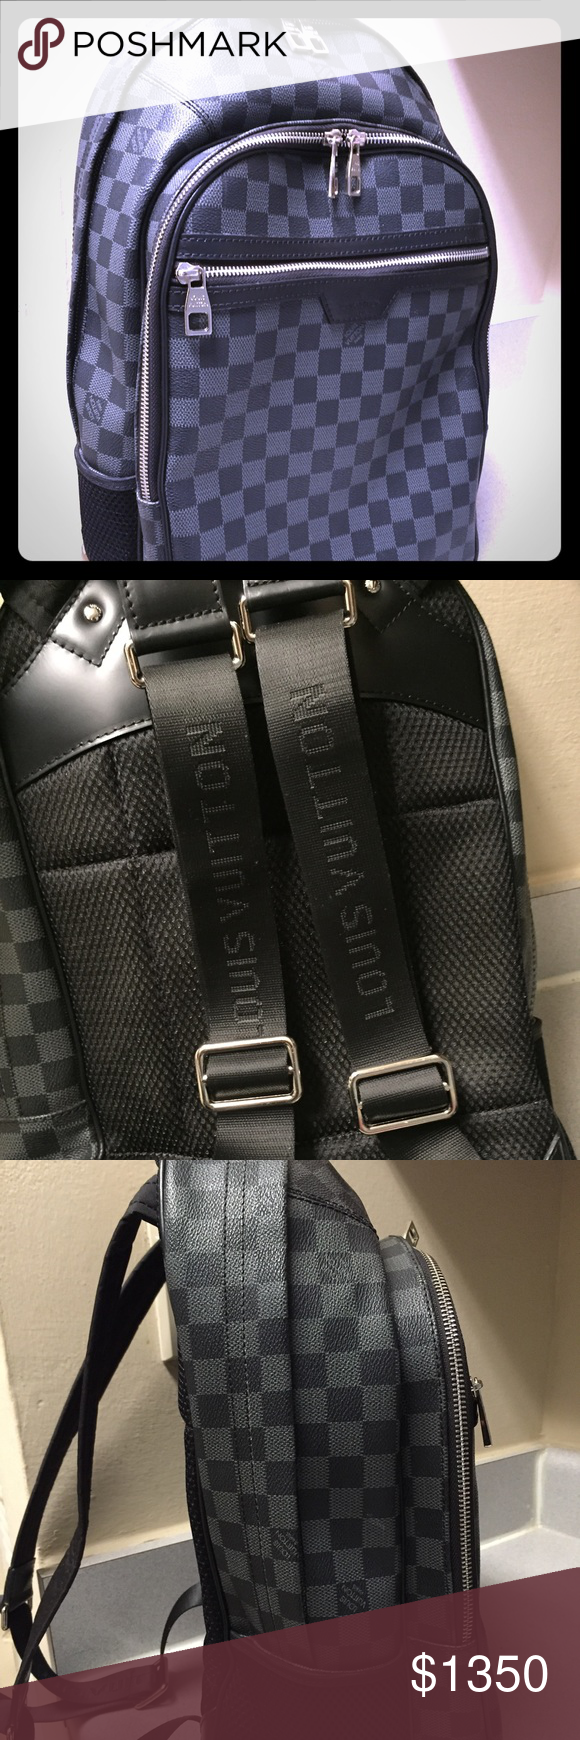 6a499d5a0b7d Luis Vuitton MICHAEL Back Pack Great condition. Only flaw is normal wearing  on the zippers like most LV backpacks. Doesn t come with box.